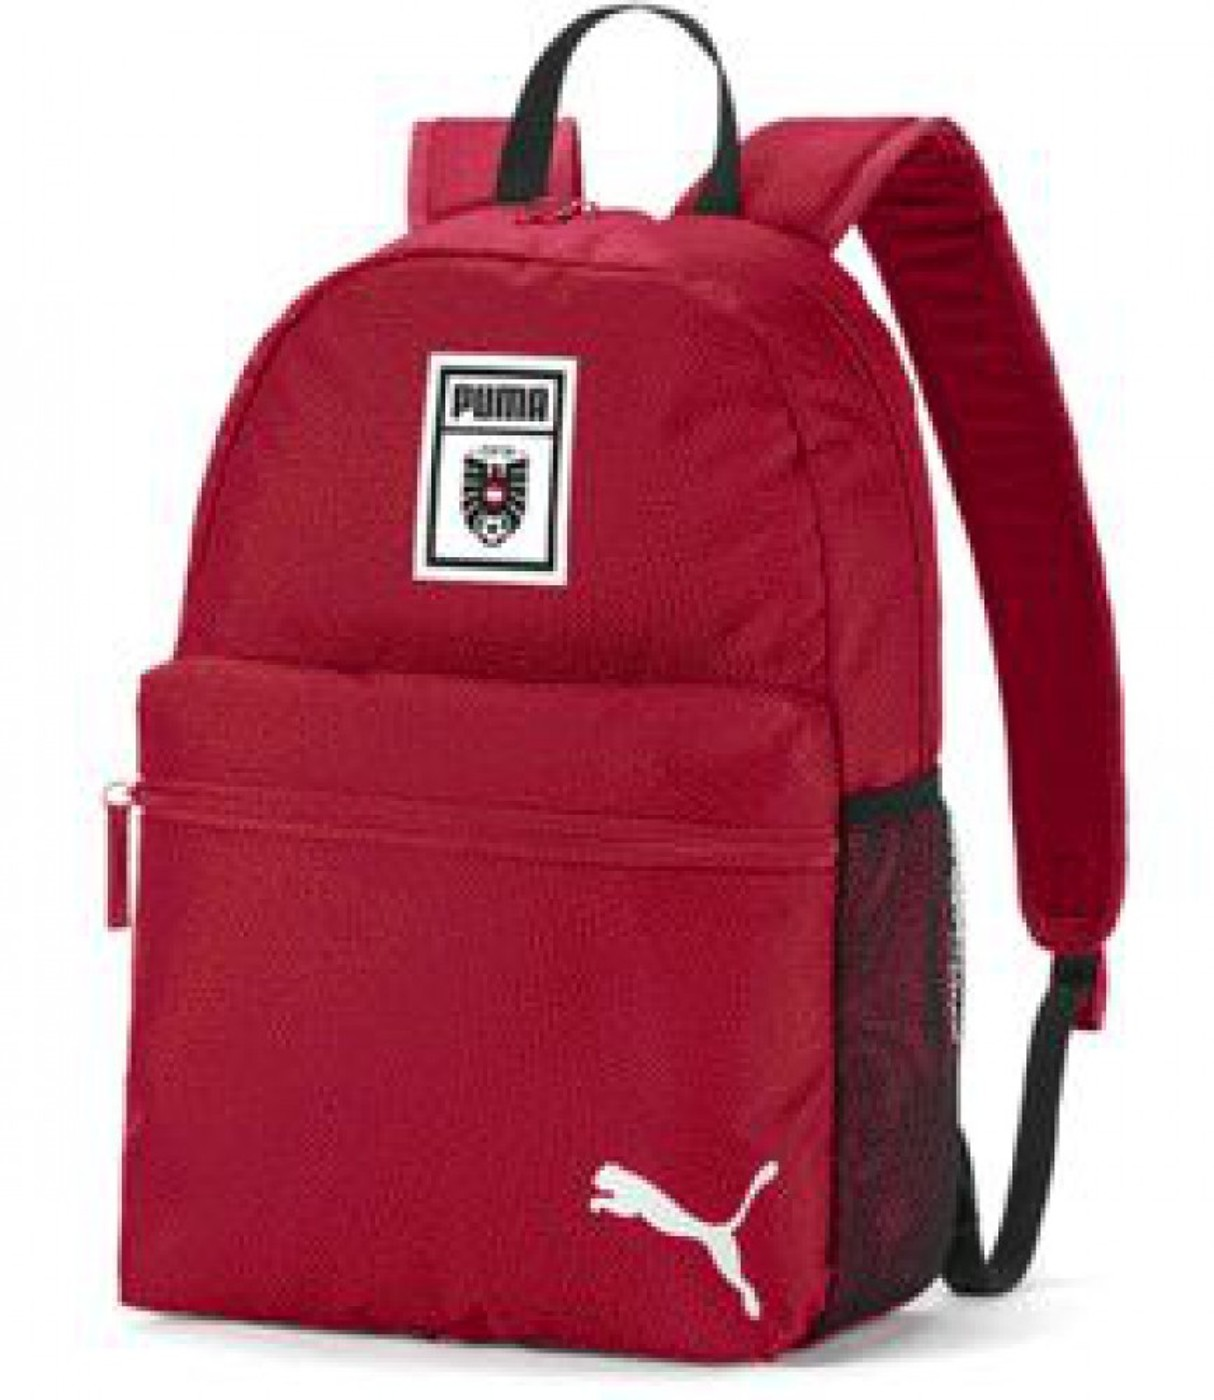 ÖFB PUMA DNA Phase Backpack